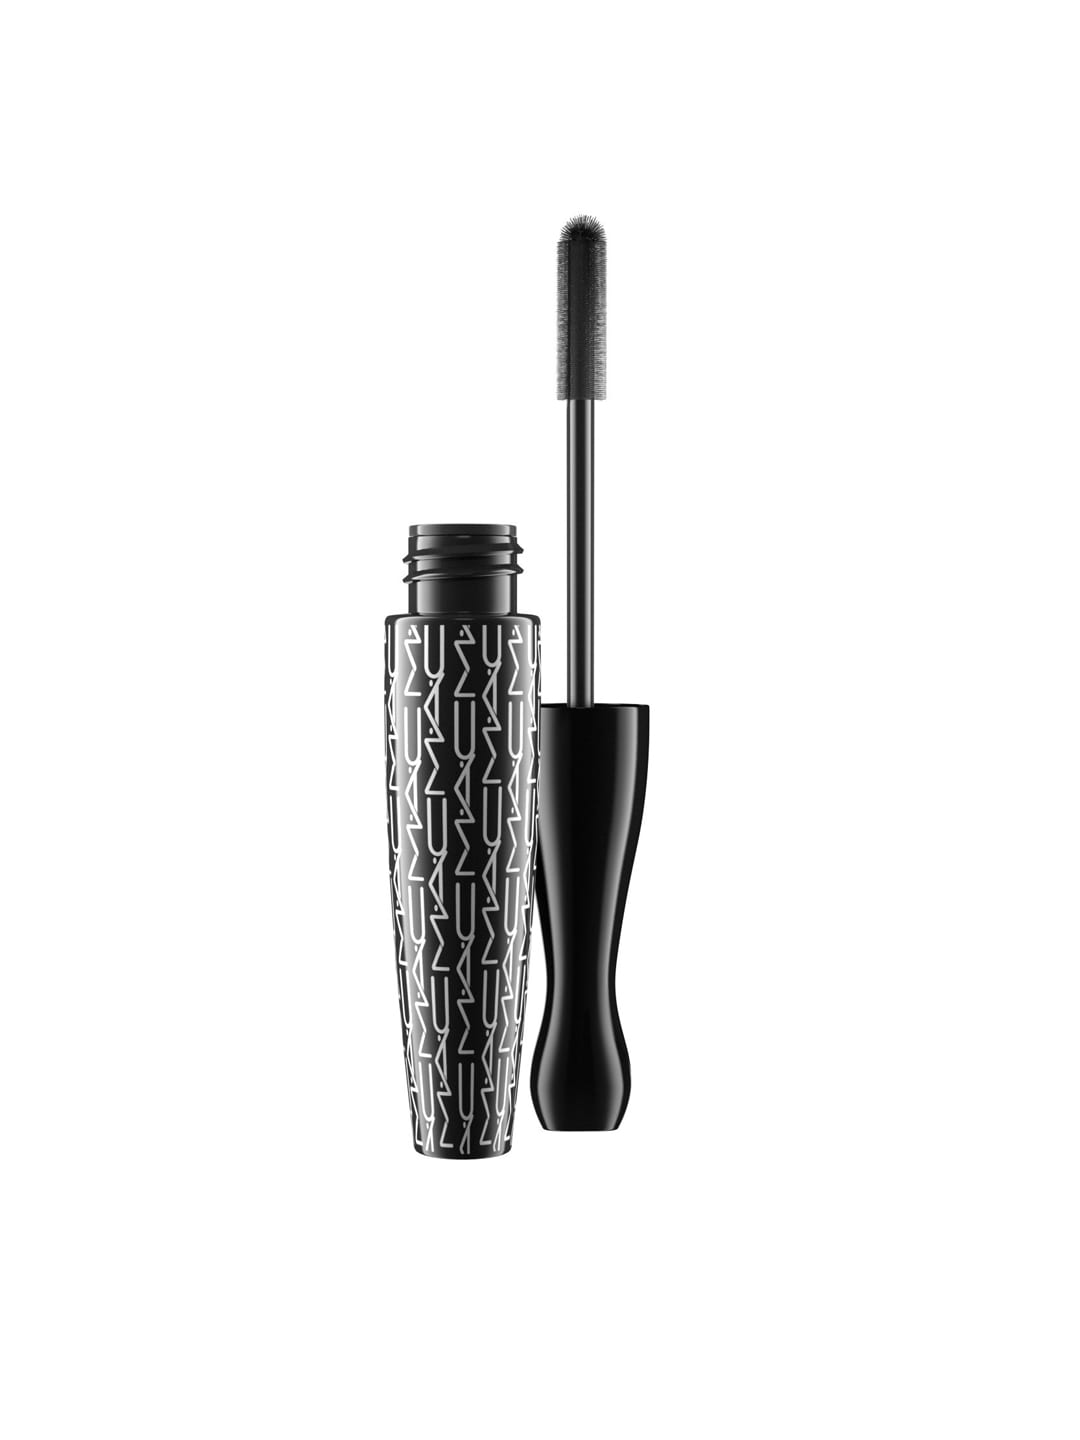 M.A.C Black Extreme In Extreme Dimension Lash Mascara image